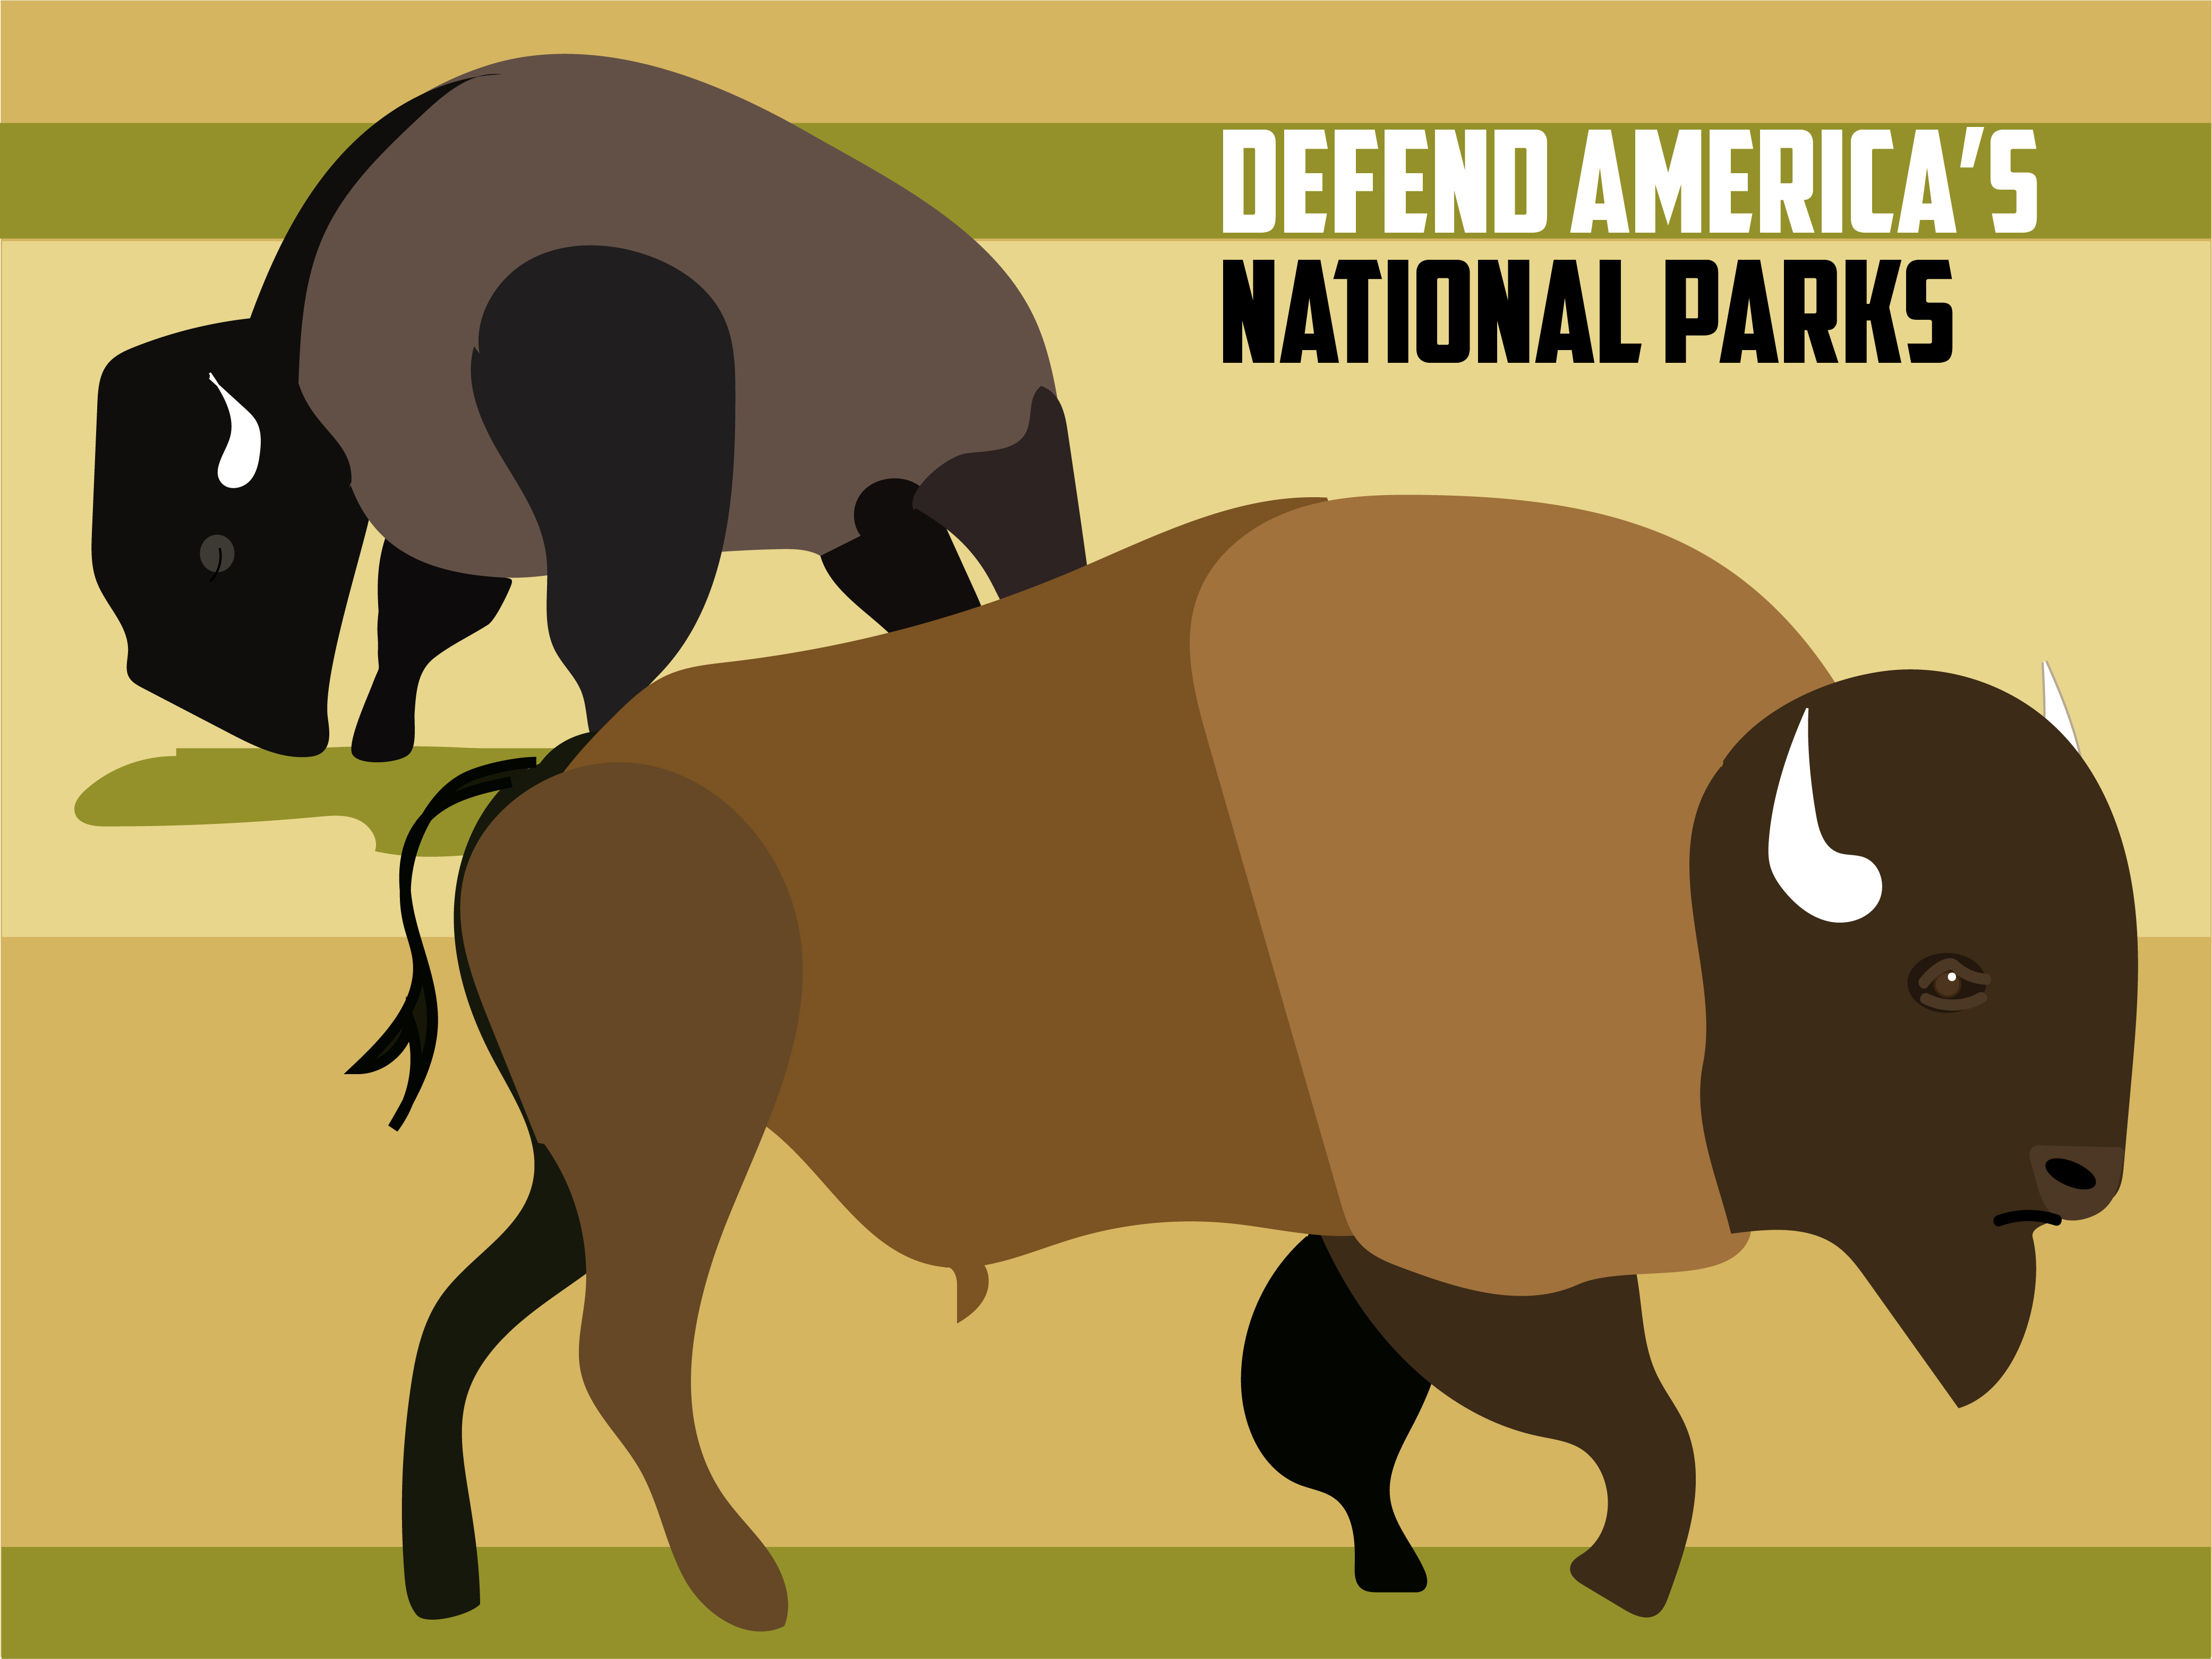 Defend America's National Parks